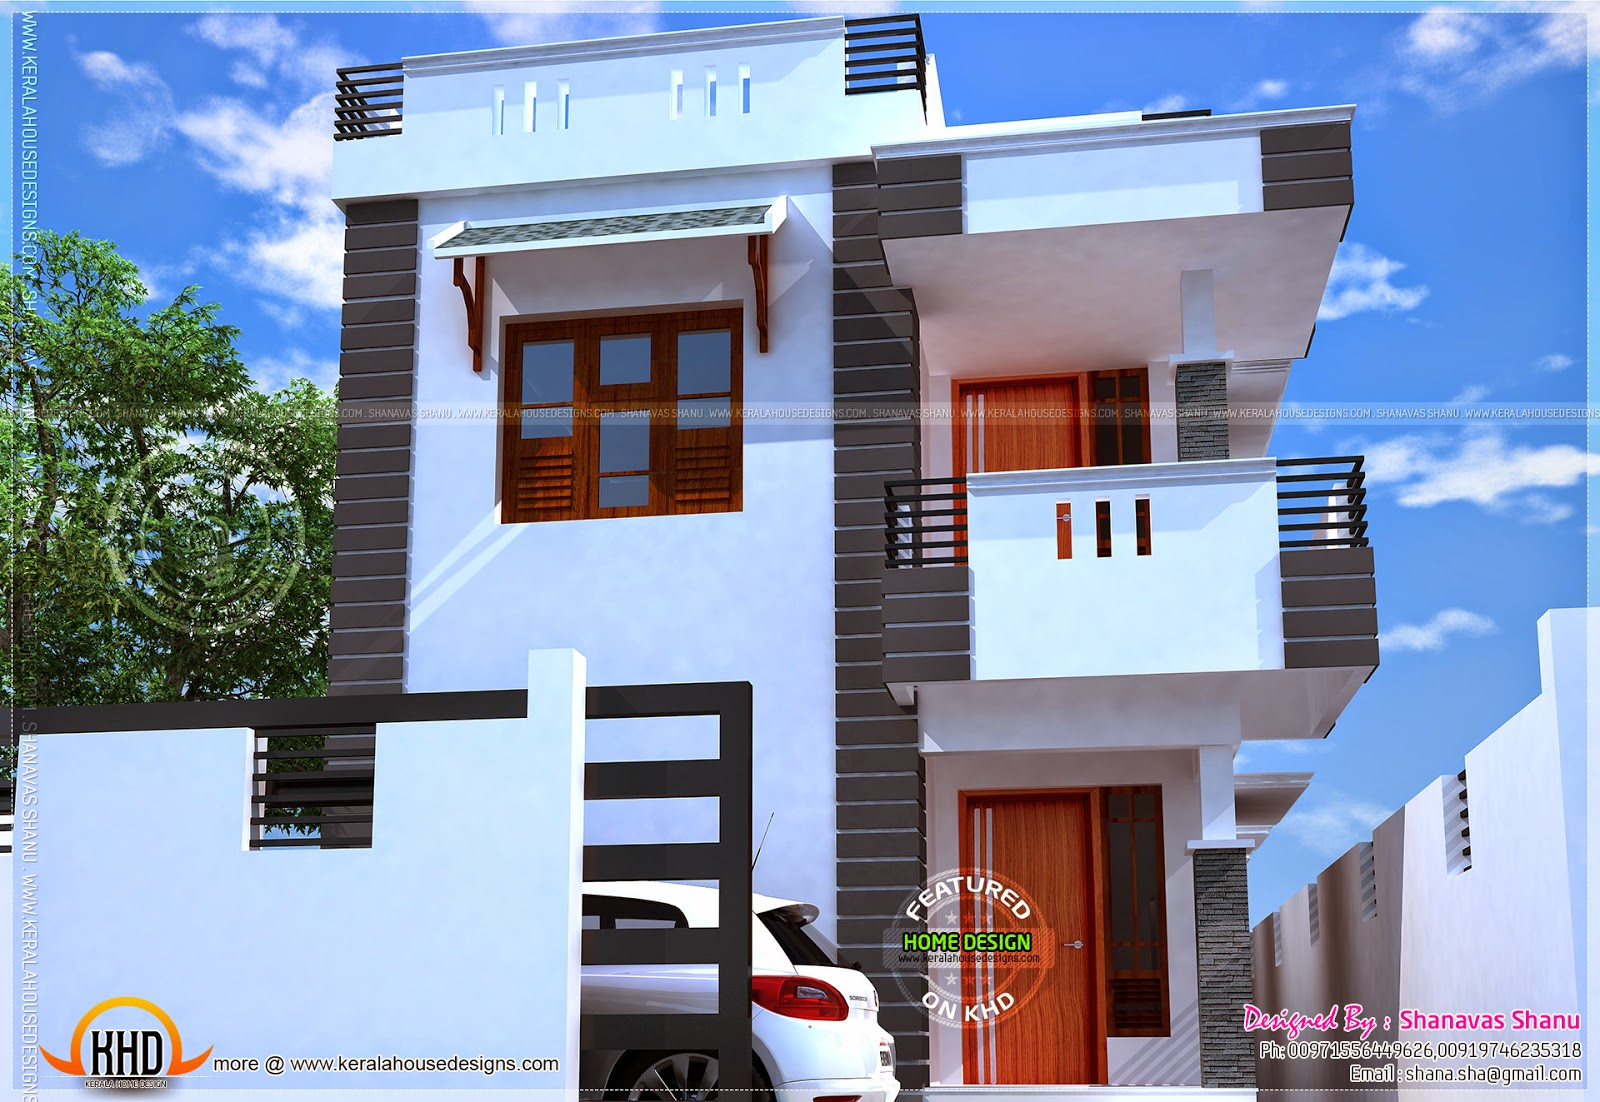 exceptional 600 sq ft house design india #10: Small villa with floor plans